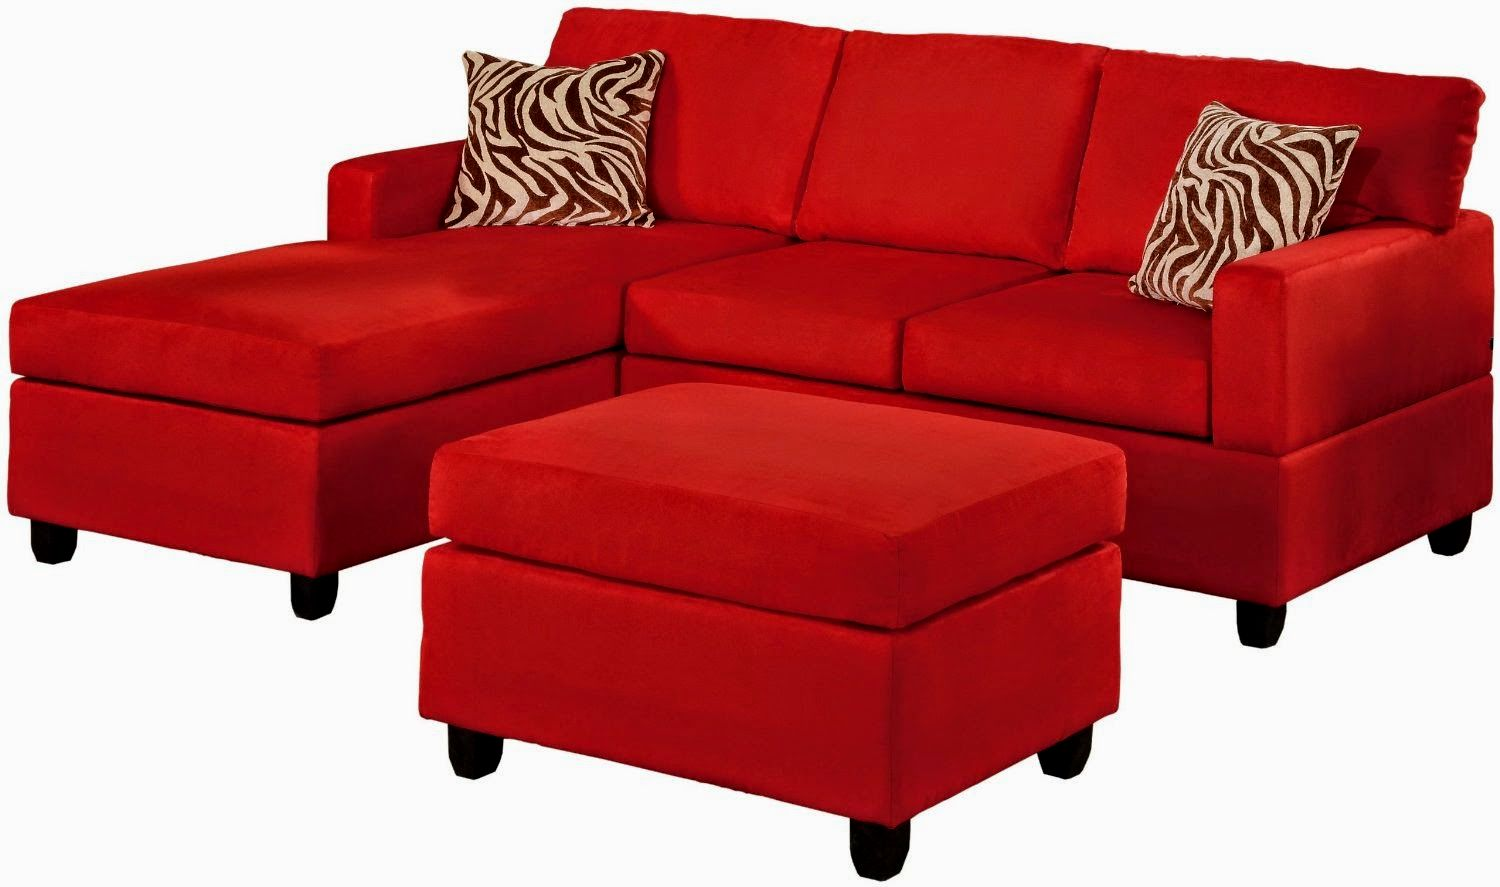 amazing red sectional sofa ideas-Stylish Red Sectional sofa Architecture